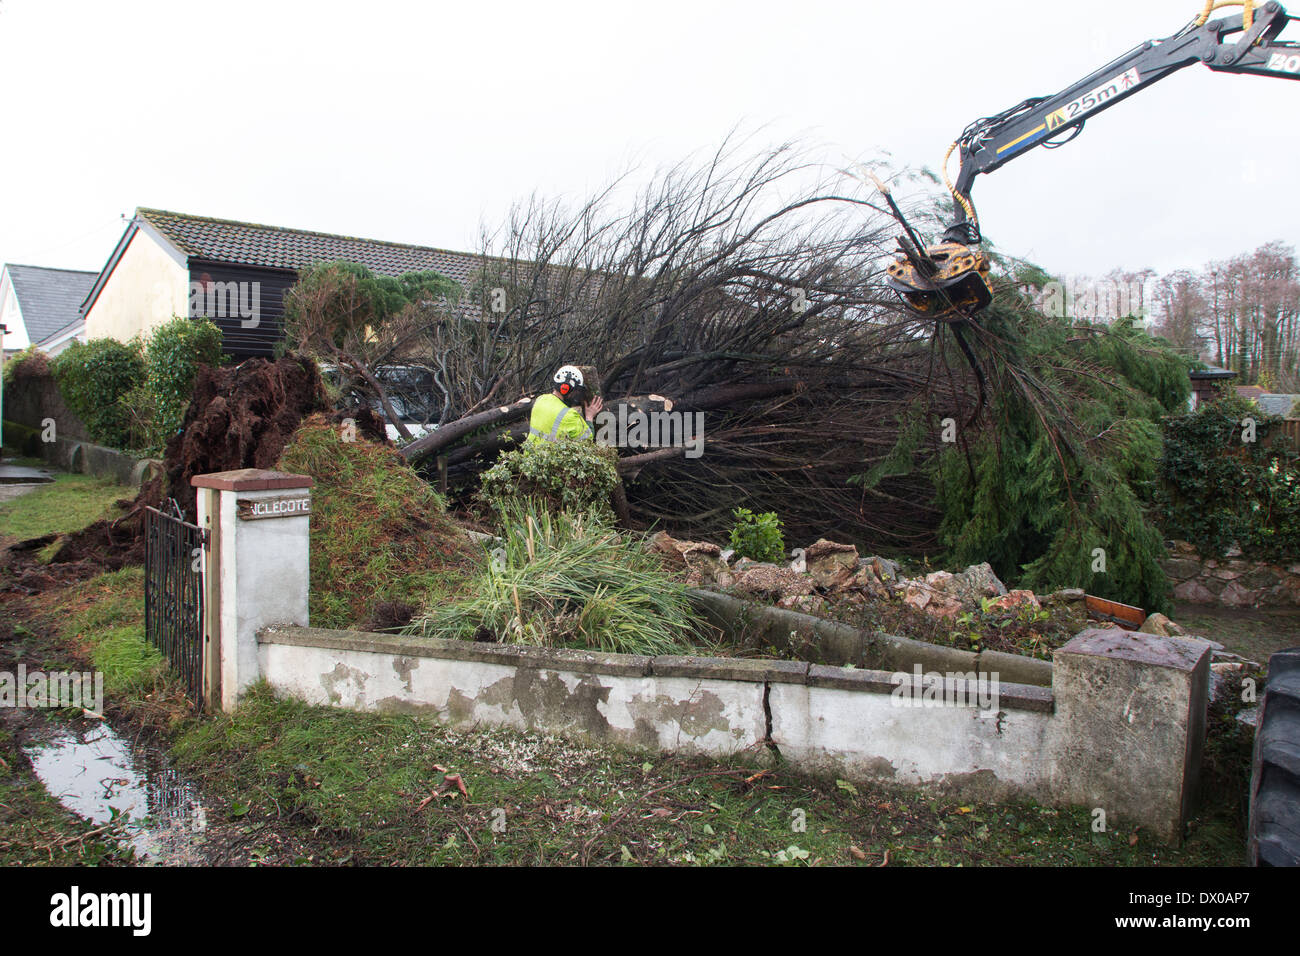 Dawlish Storm Blows a Tree Down in Storms Stock Photo